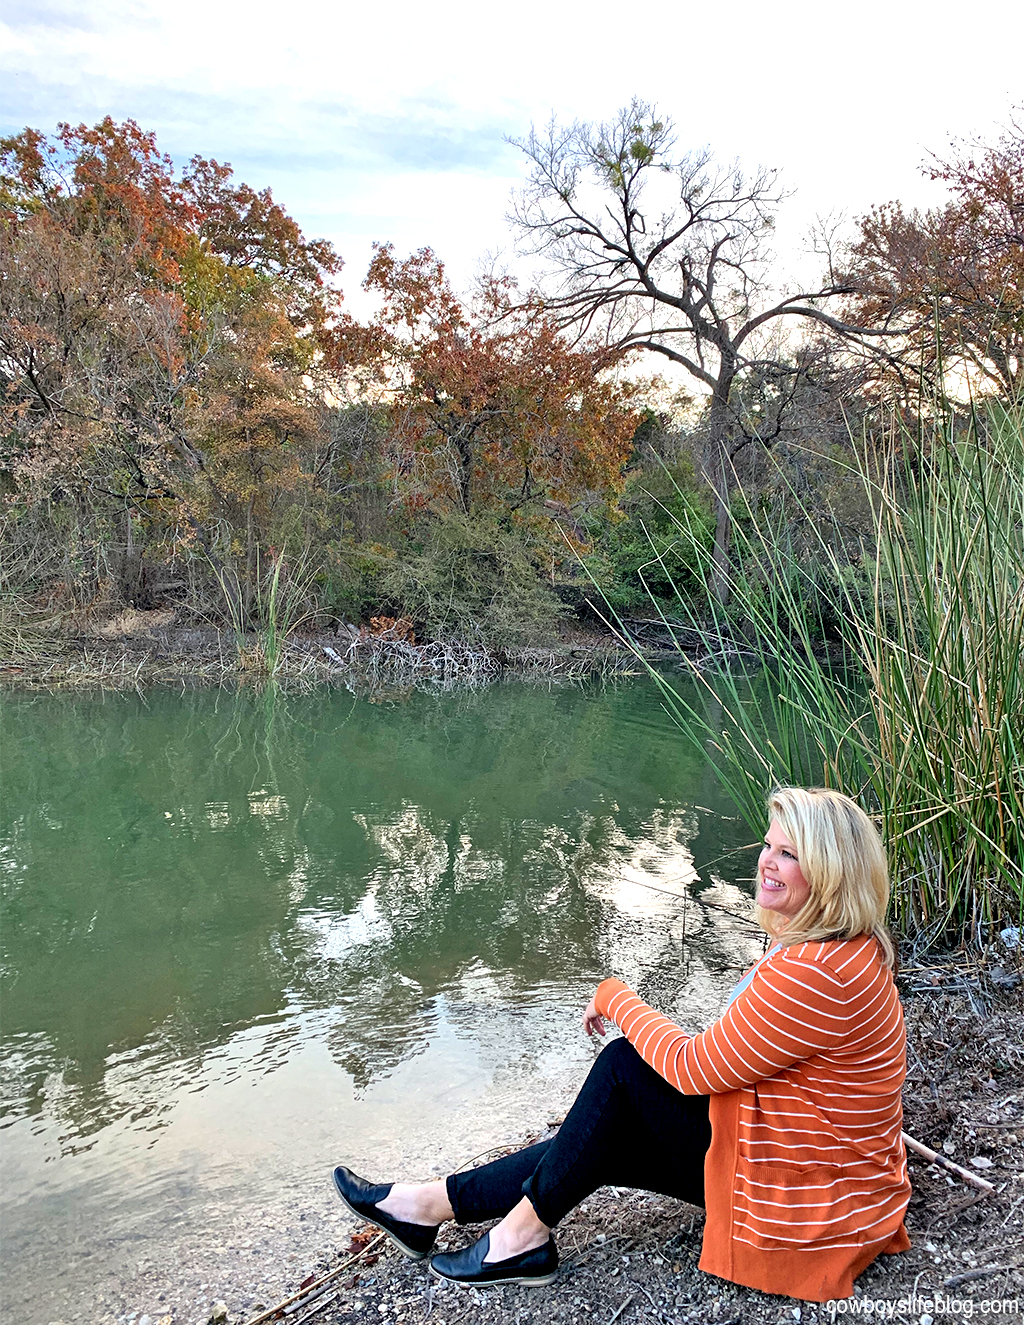 Things to Do In Cleburne, TX